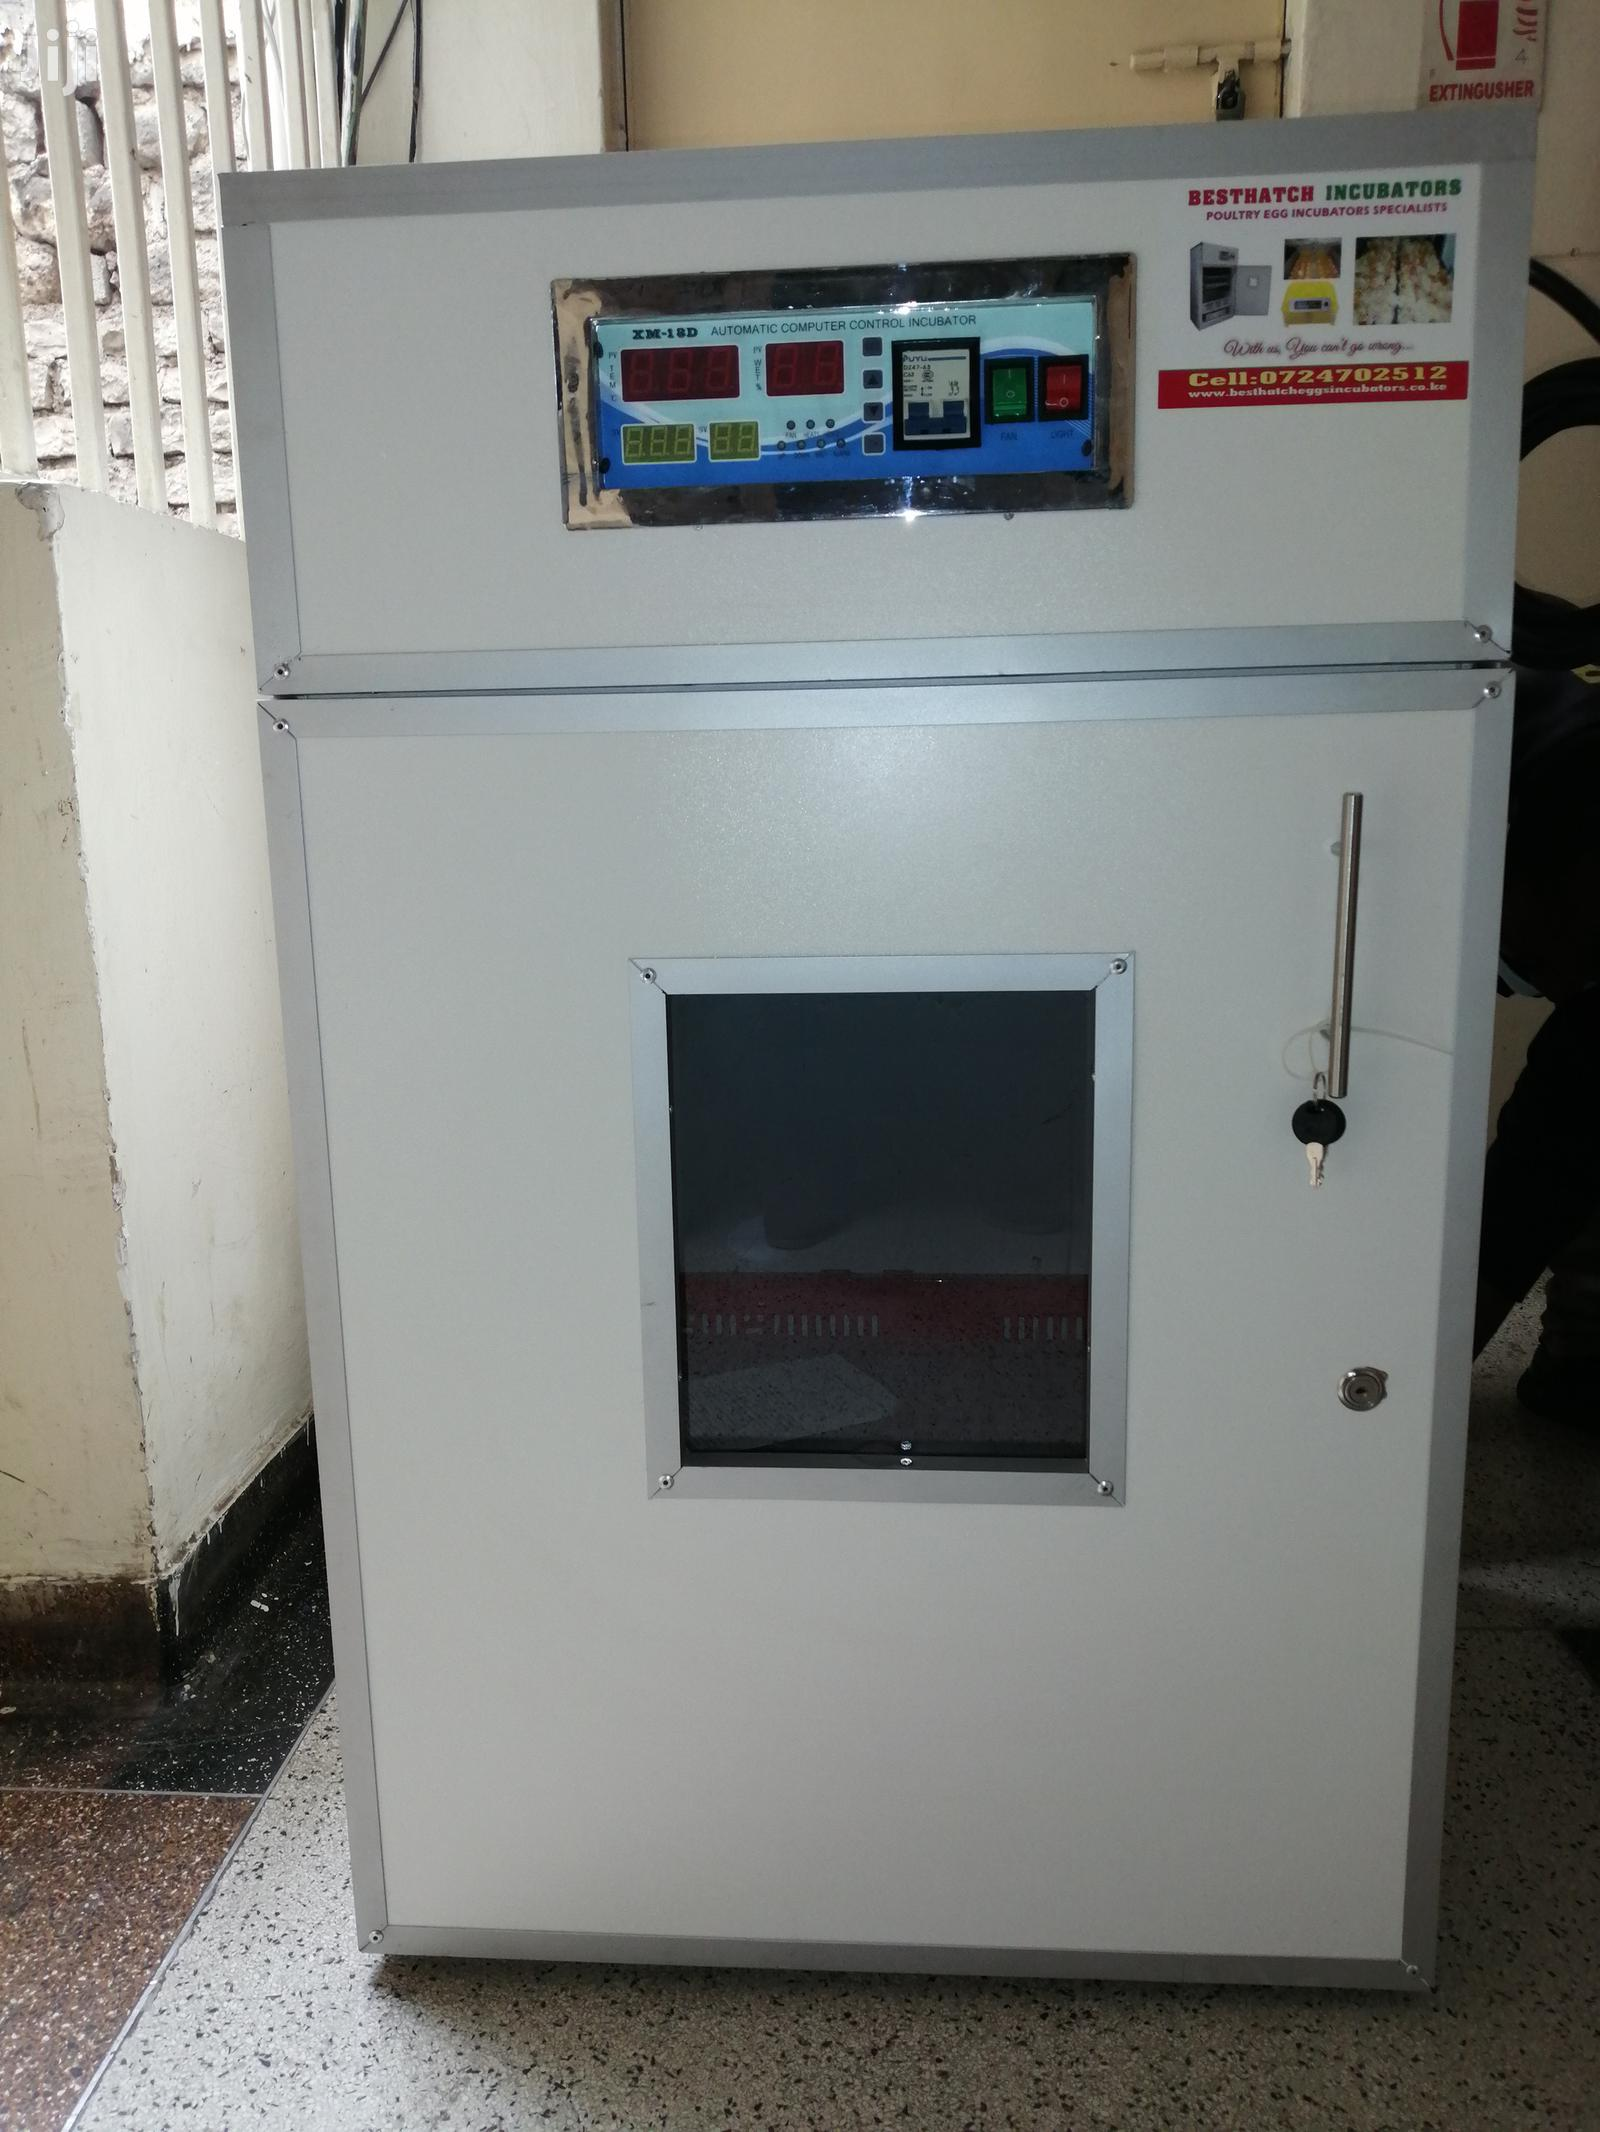 Incubator All Sizes And Spare Parts | Farm Machinery & Equipment for sale in Nairobi Central, Nairobi, Kenya